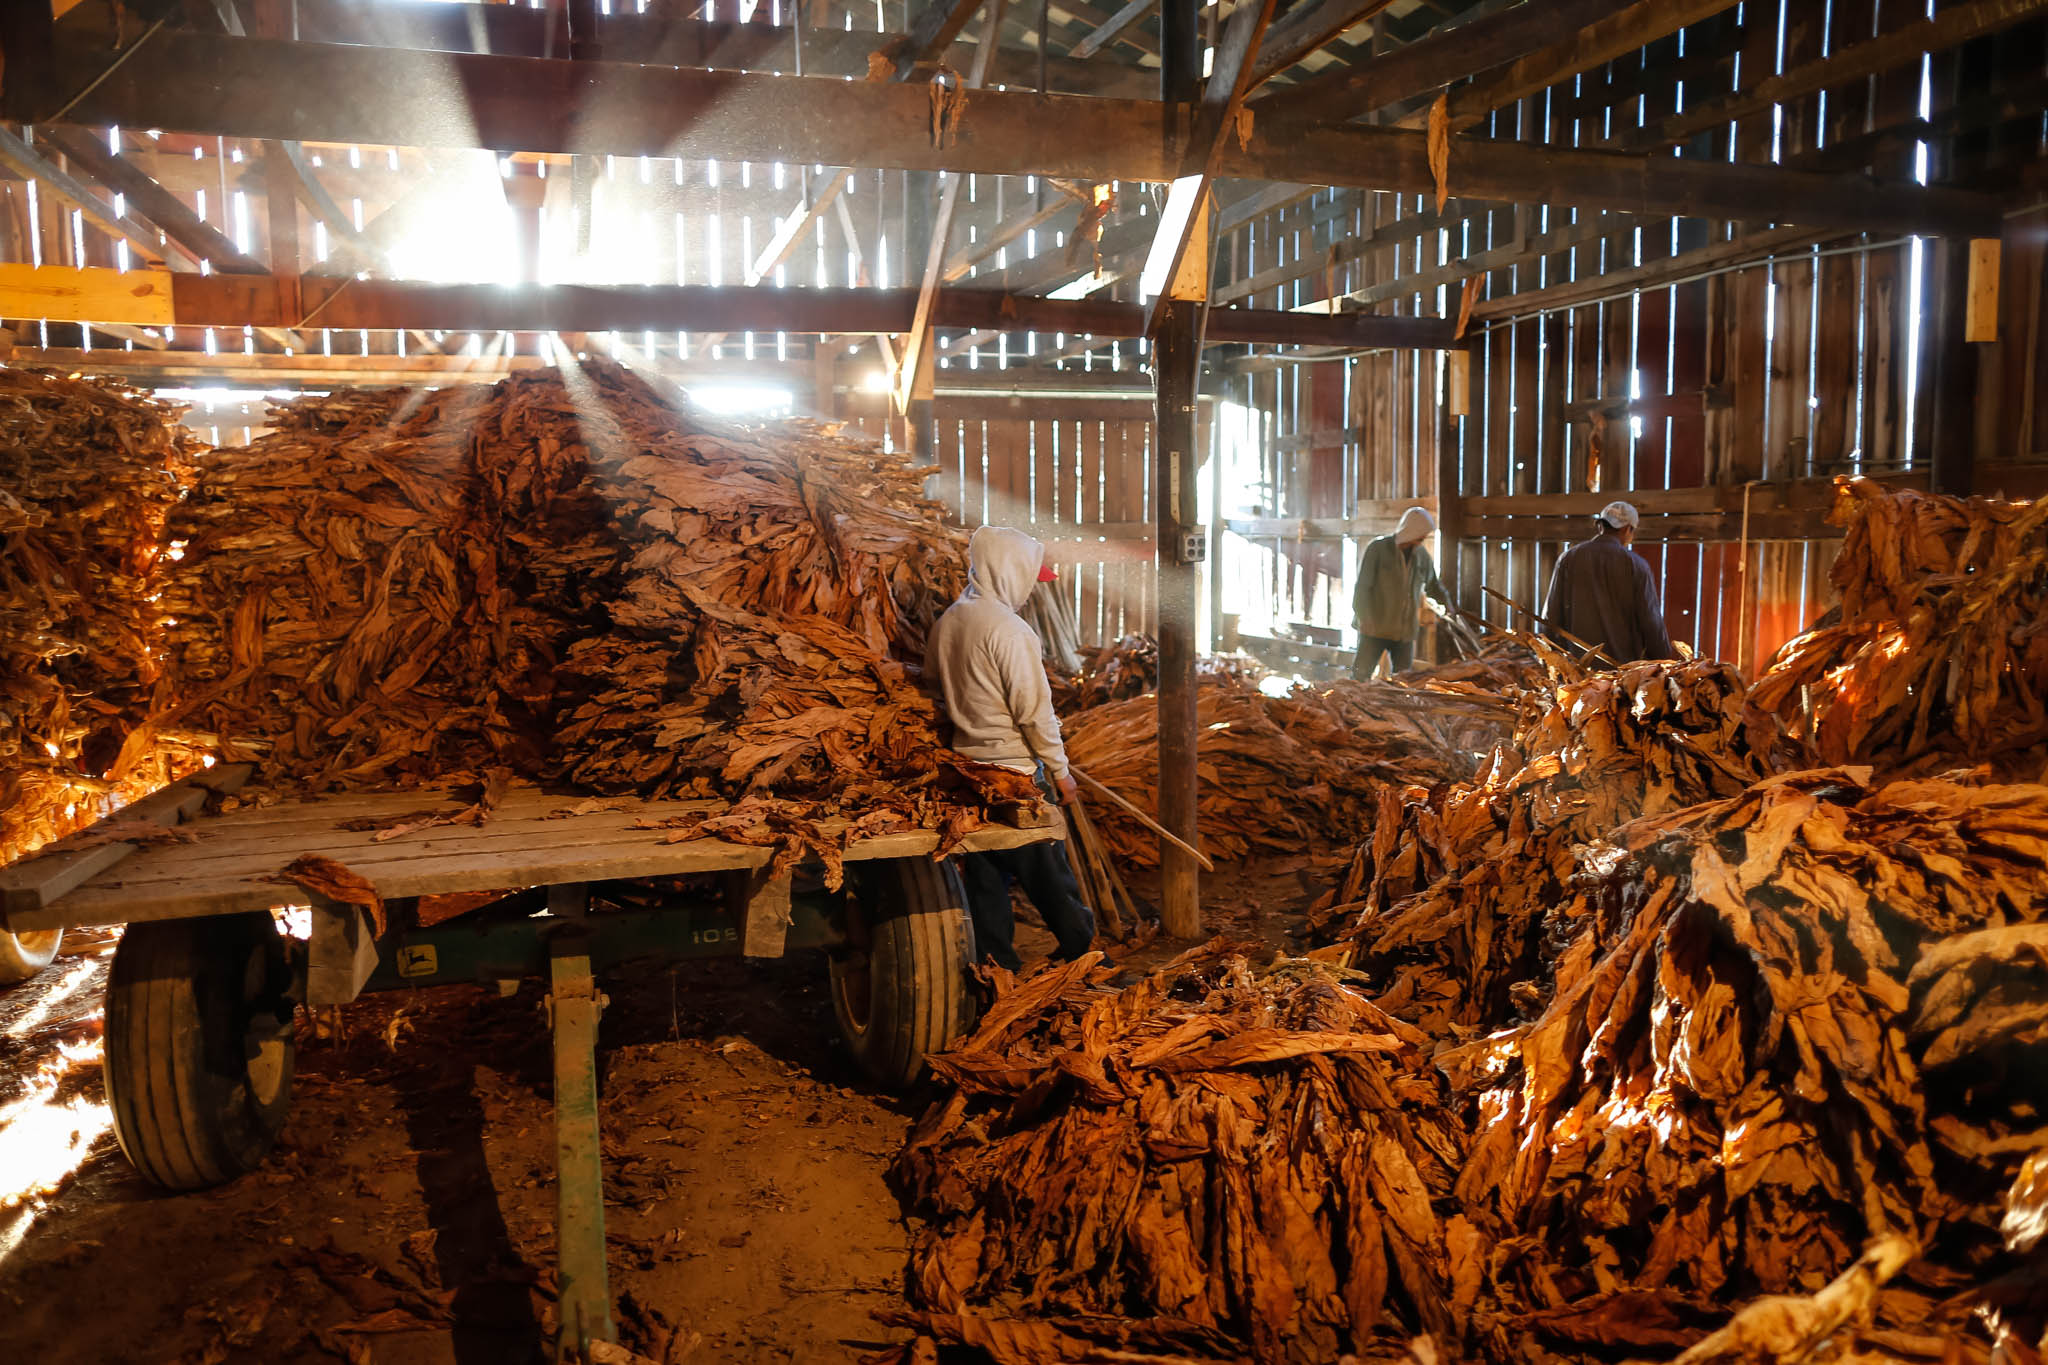 Migrant workers stock pile tobacco stalks as they are taken down from the rafters.